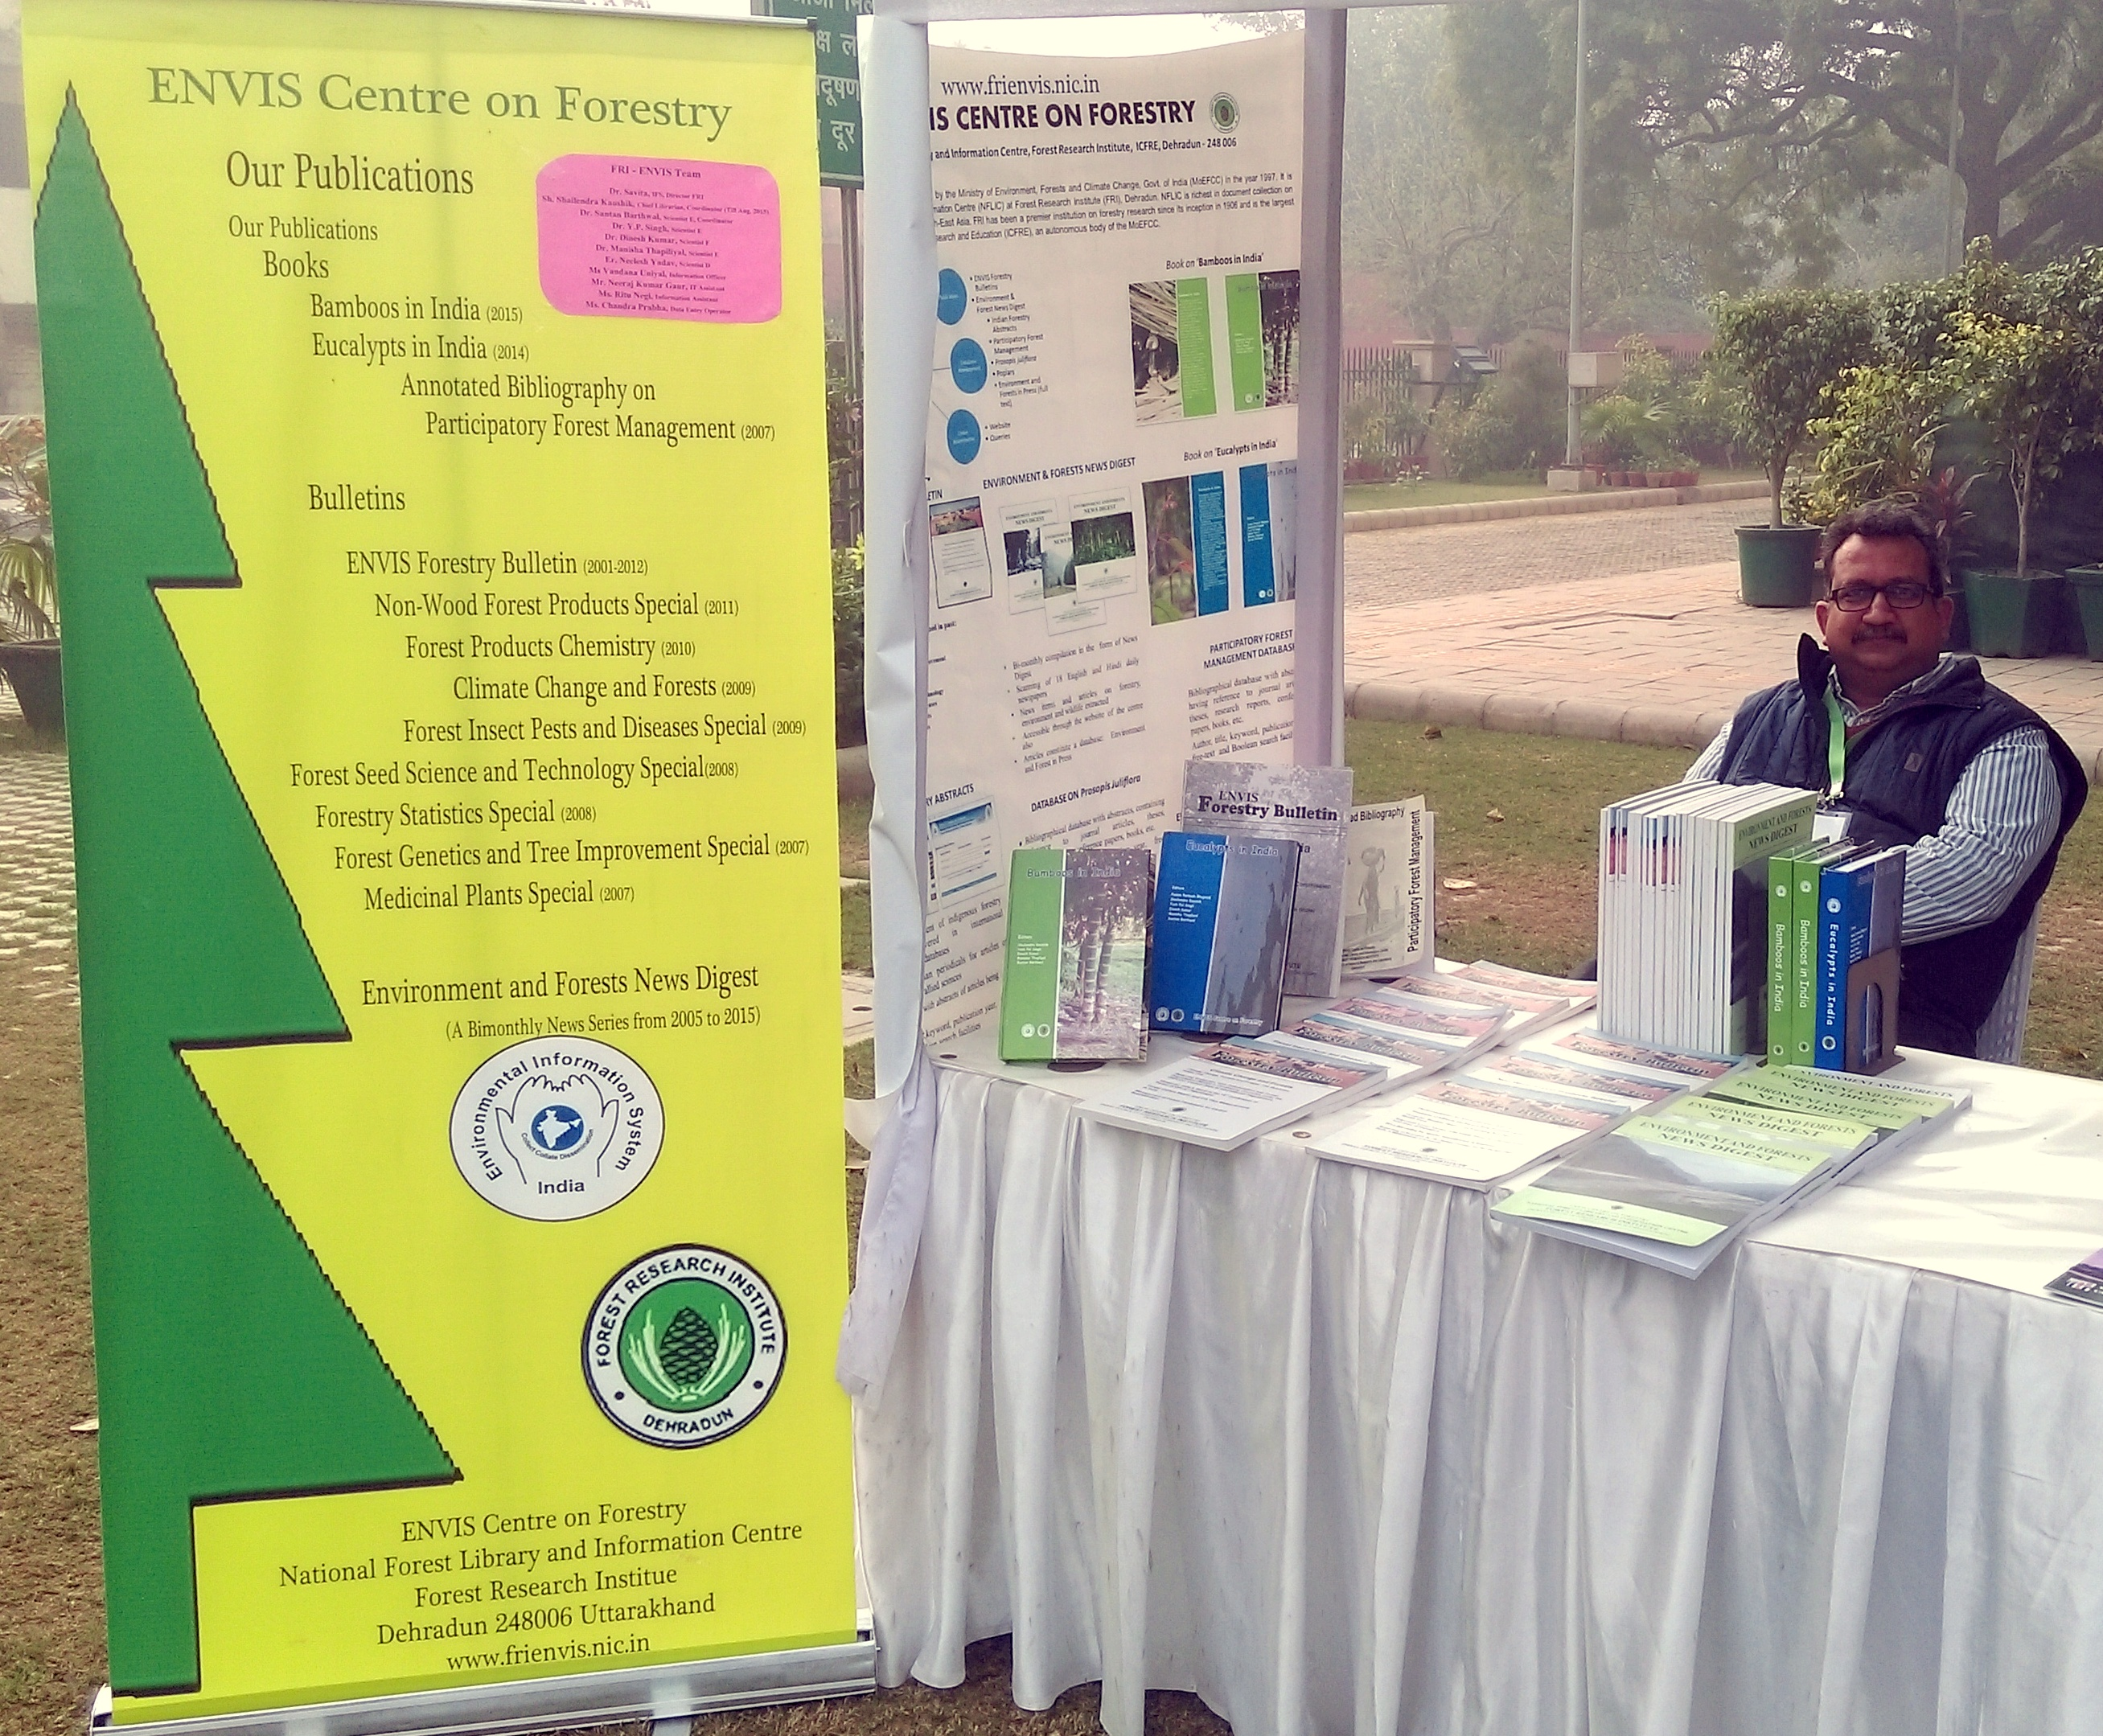 Participation in Exhibition by ENVIS Centre on Forestry